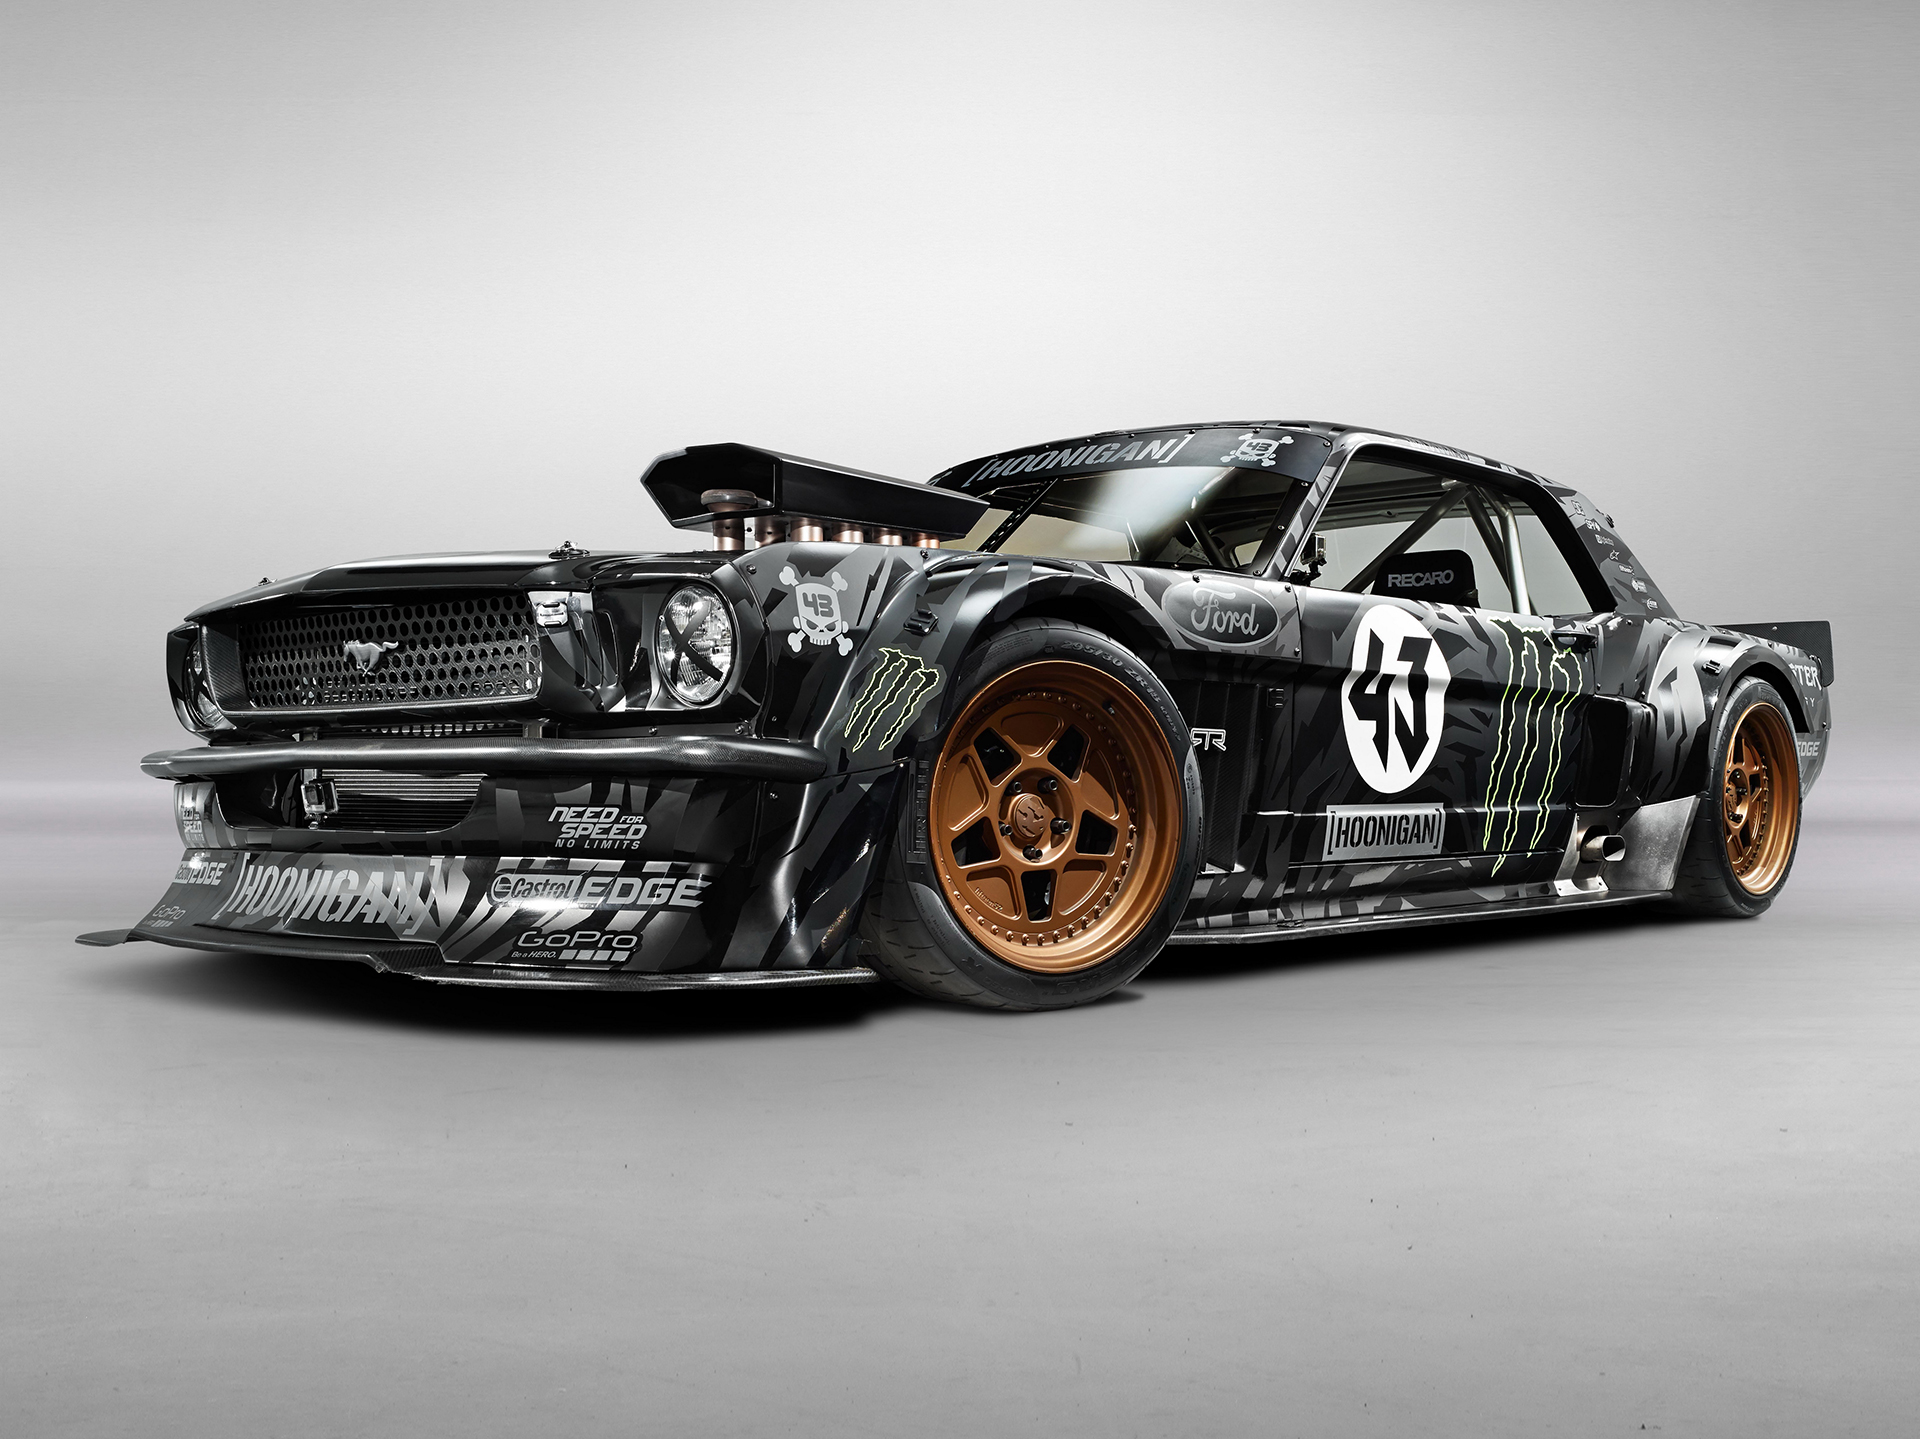 1965 ford mustang hoonicorn rtr 2015 profil avant front side face